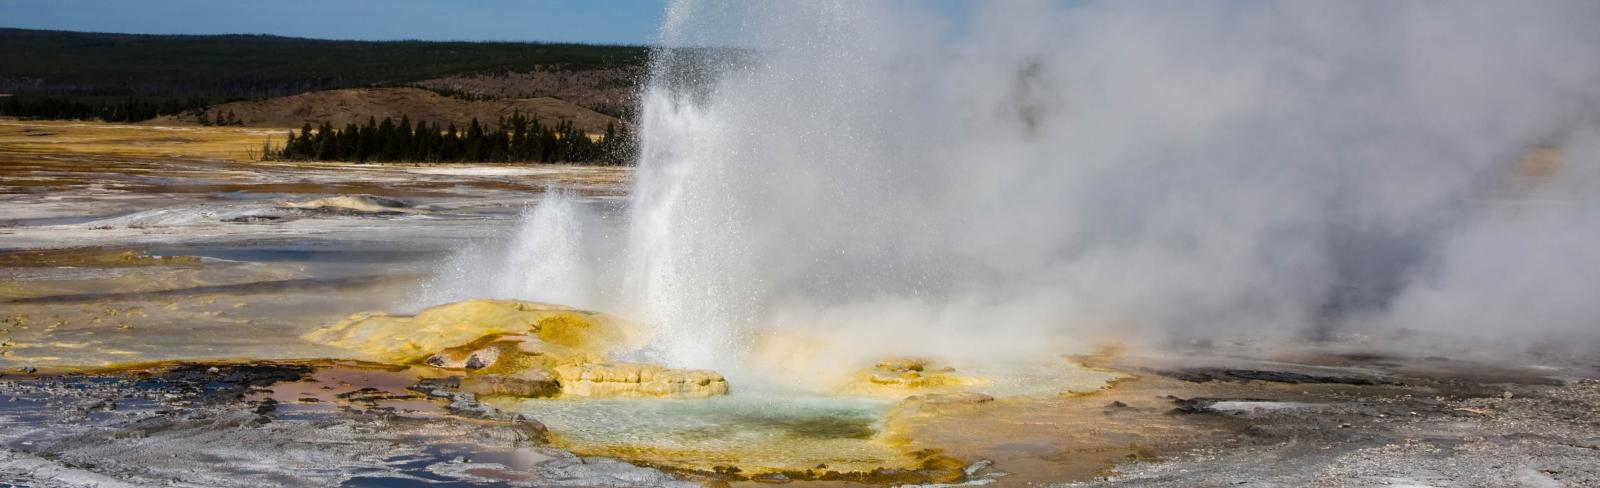 Geothermal Energy is On a Hot Path to Ending Energy Poverty